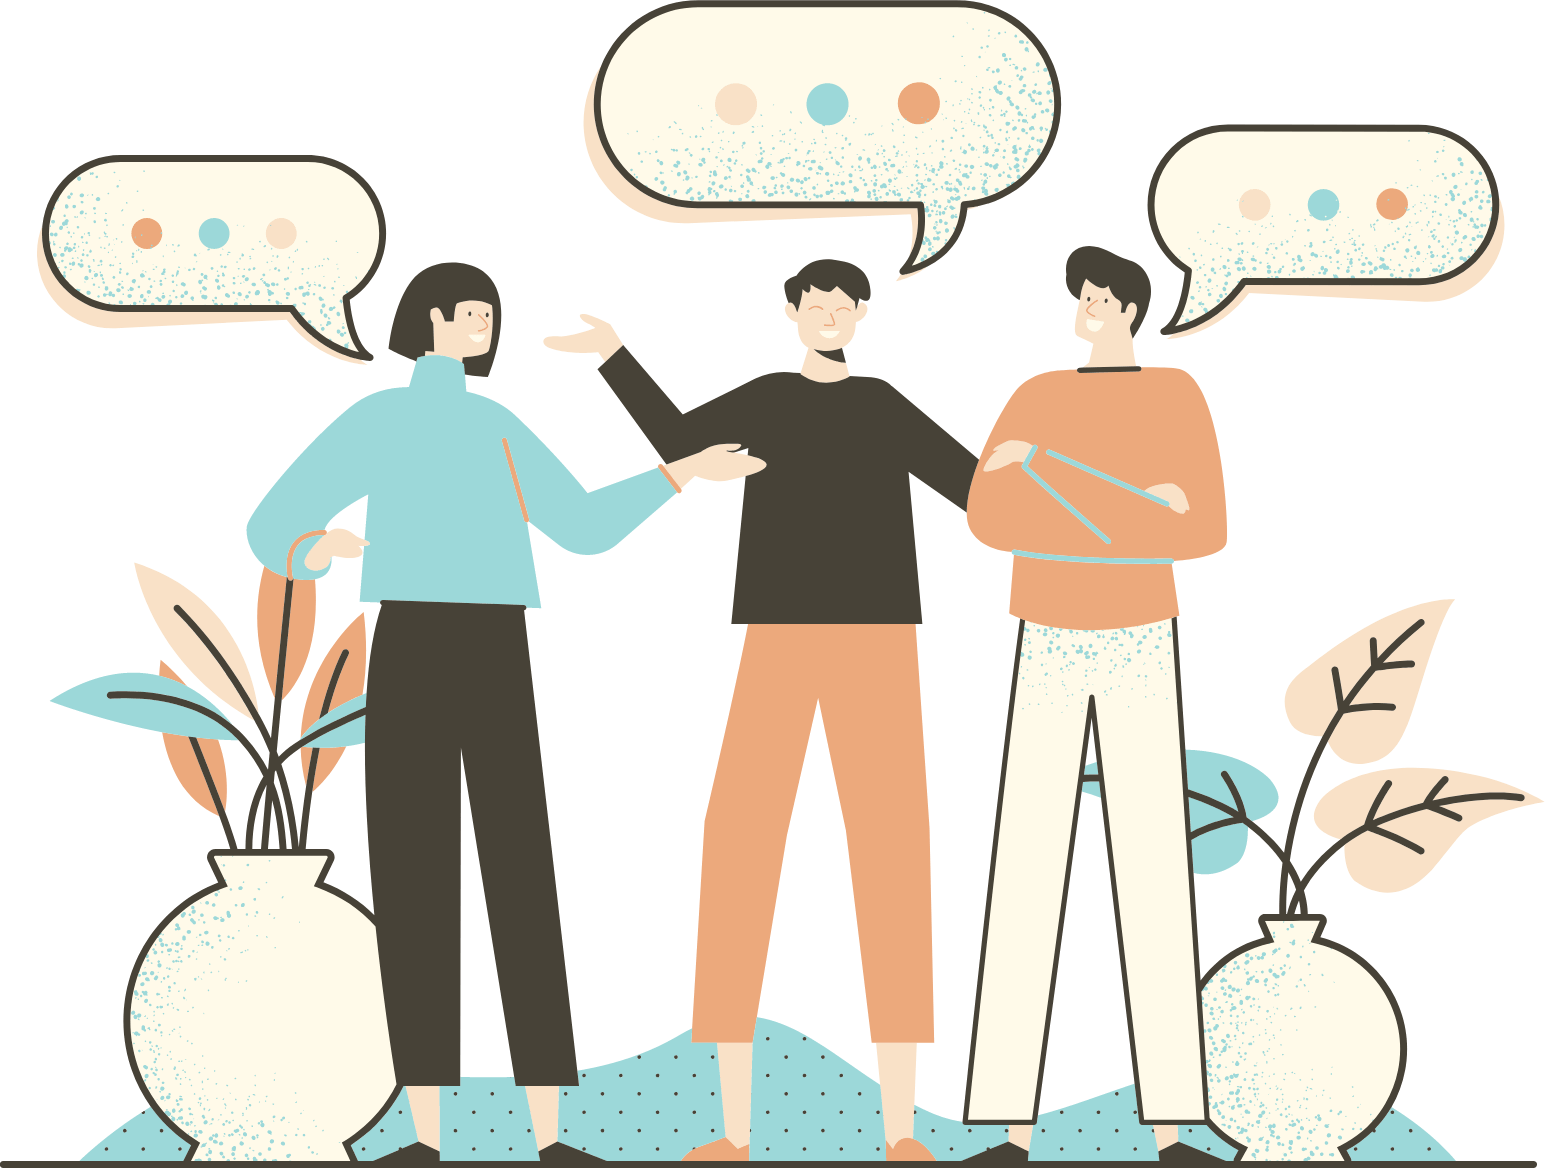 Illustration of people chatting